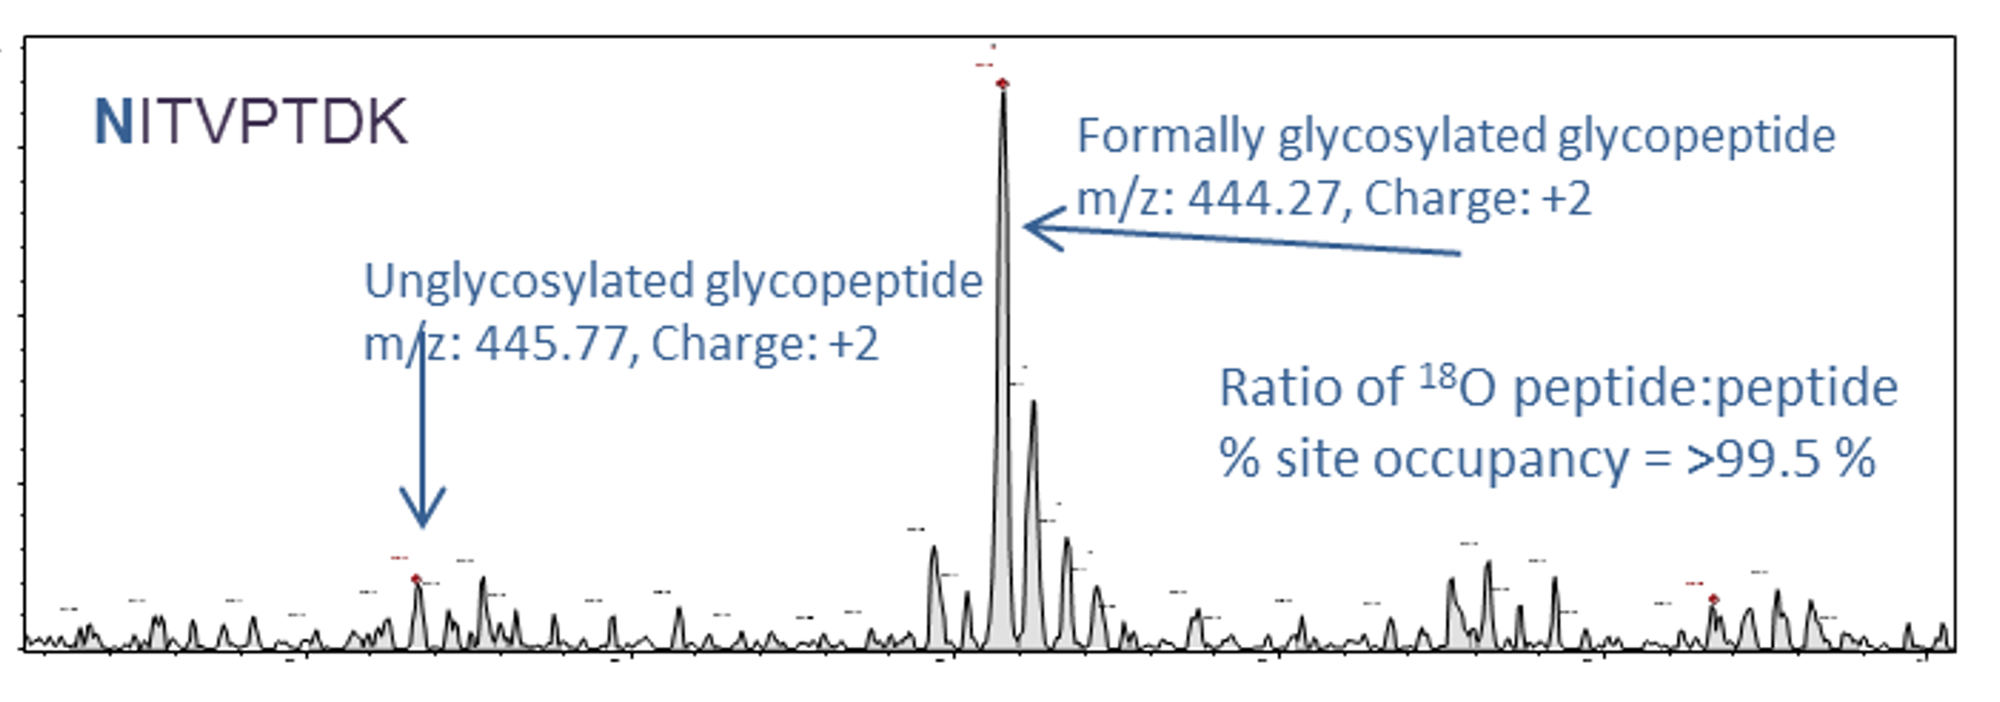 glycan site occupancy image